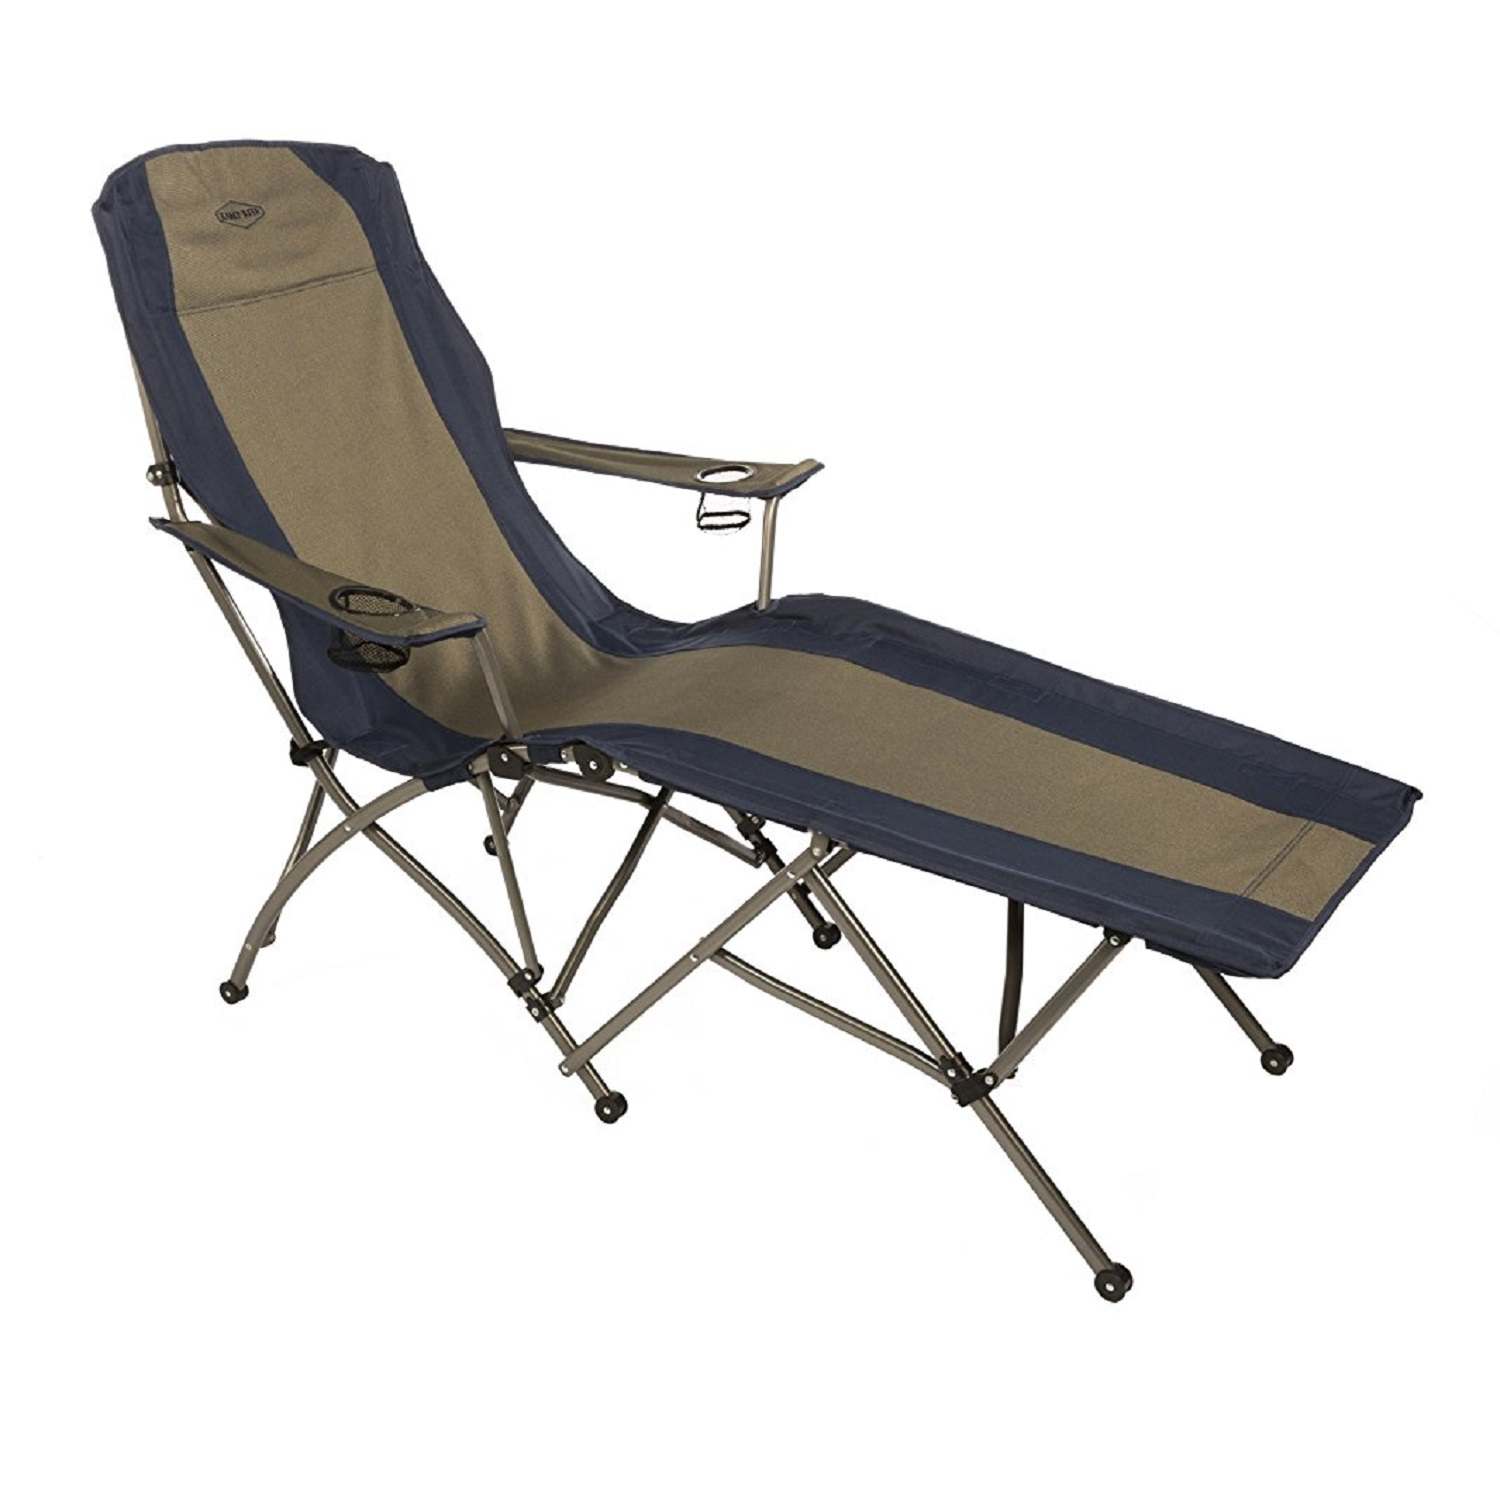 Kamp-Rite Soft Arm Lounger - Tan Blue